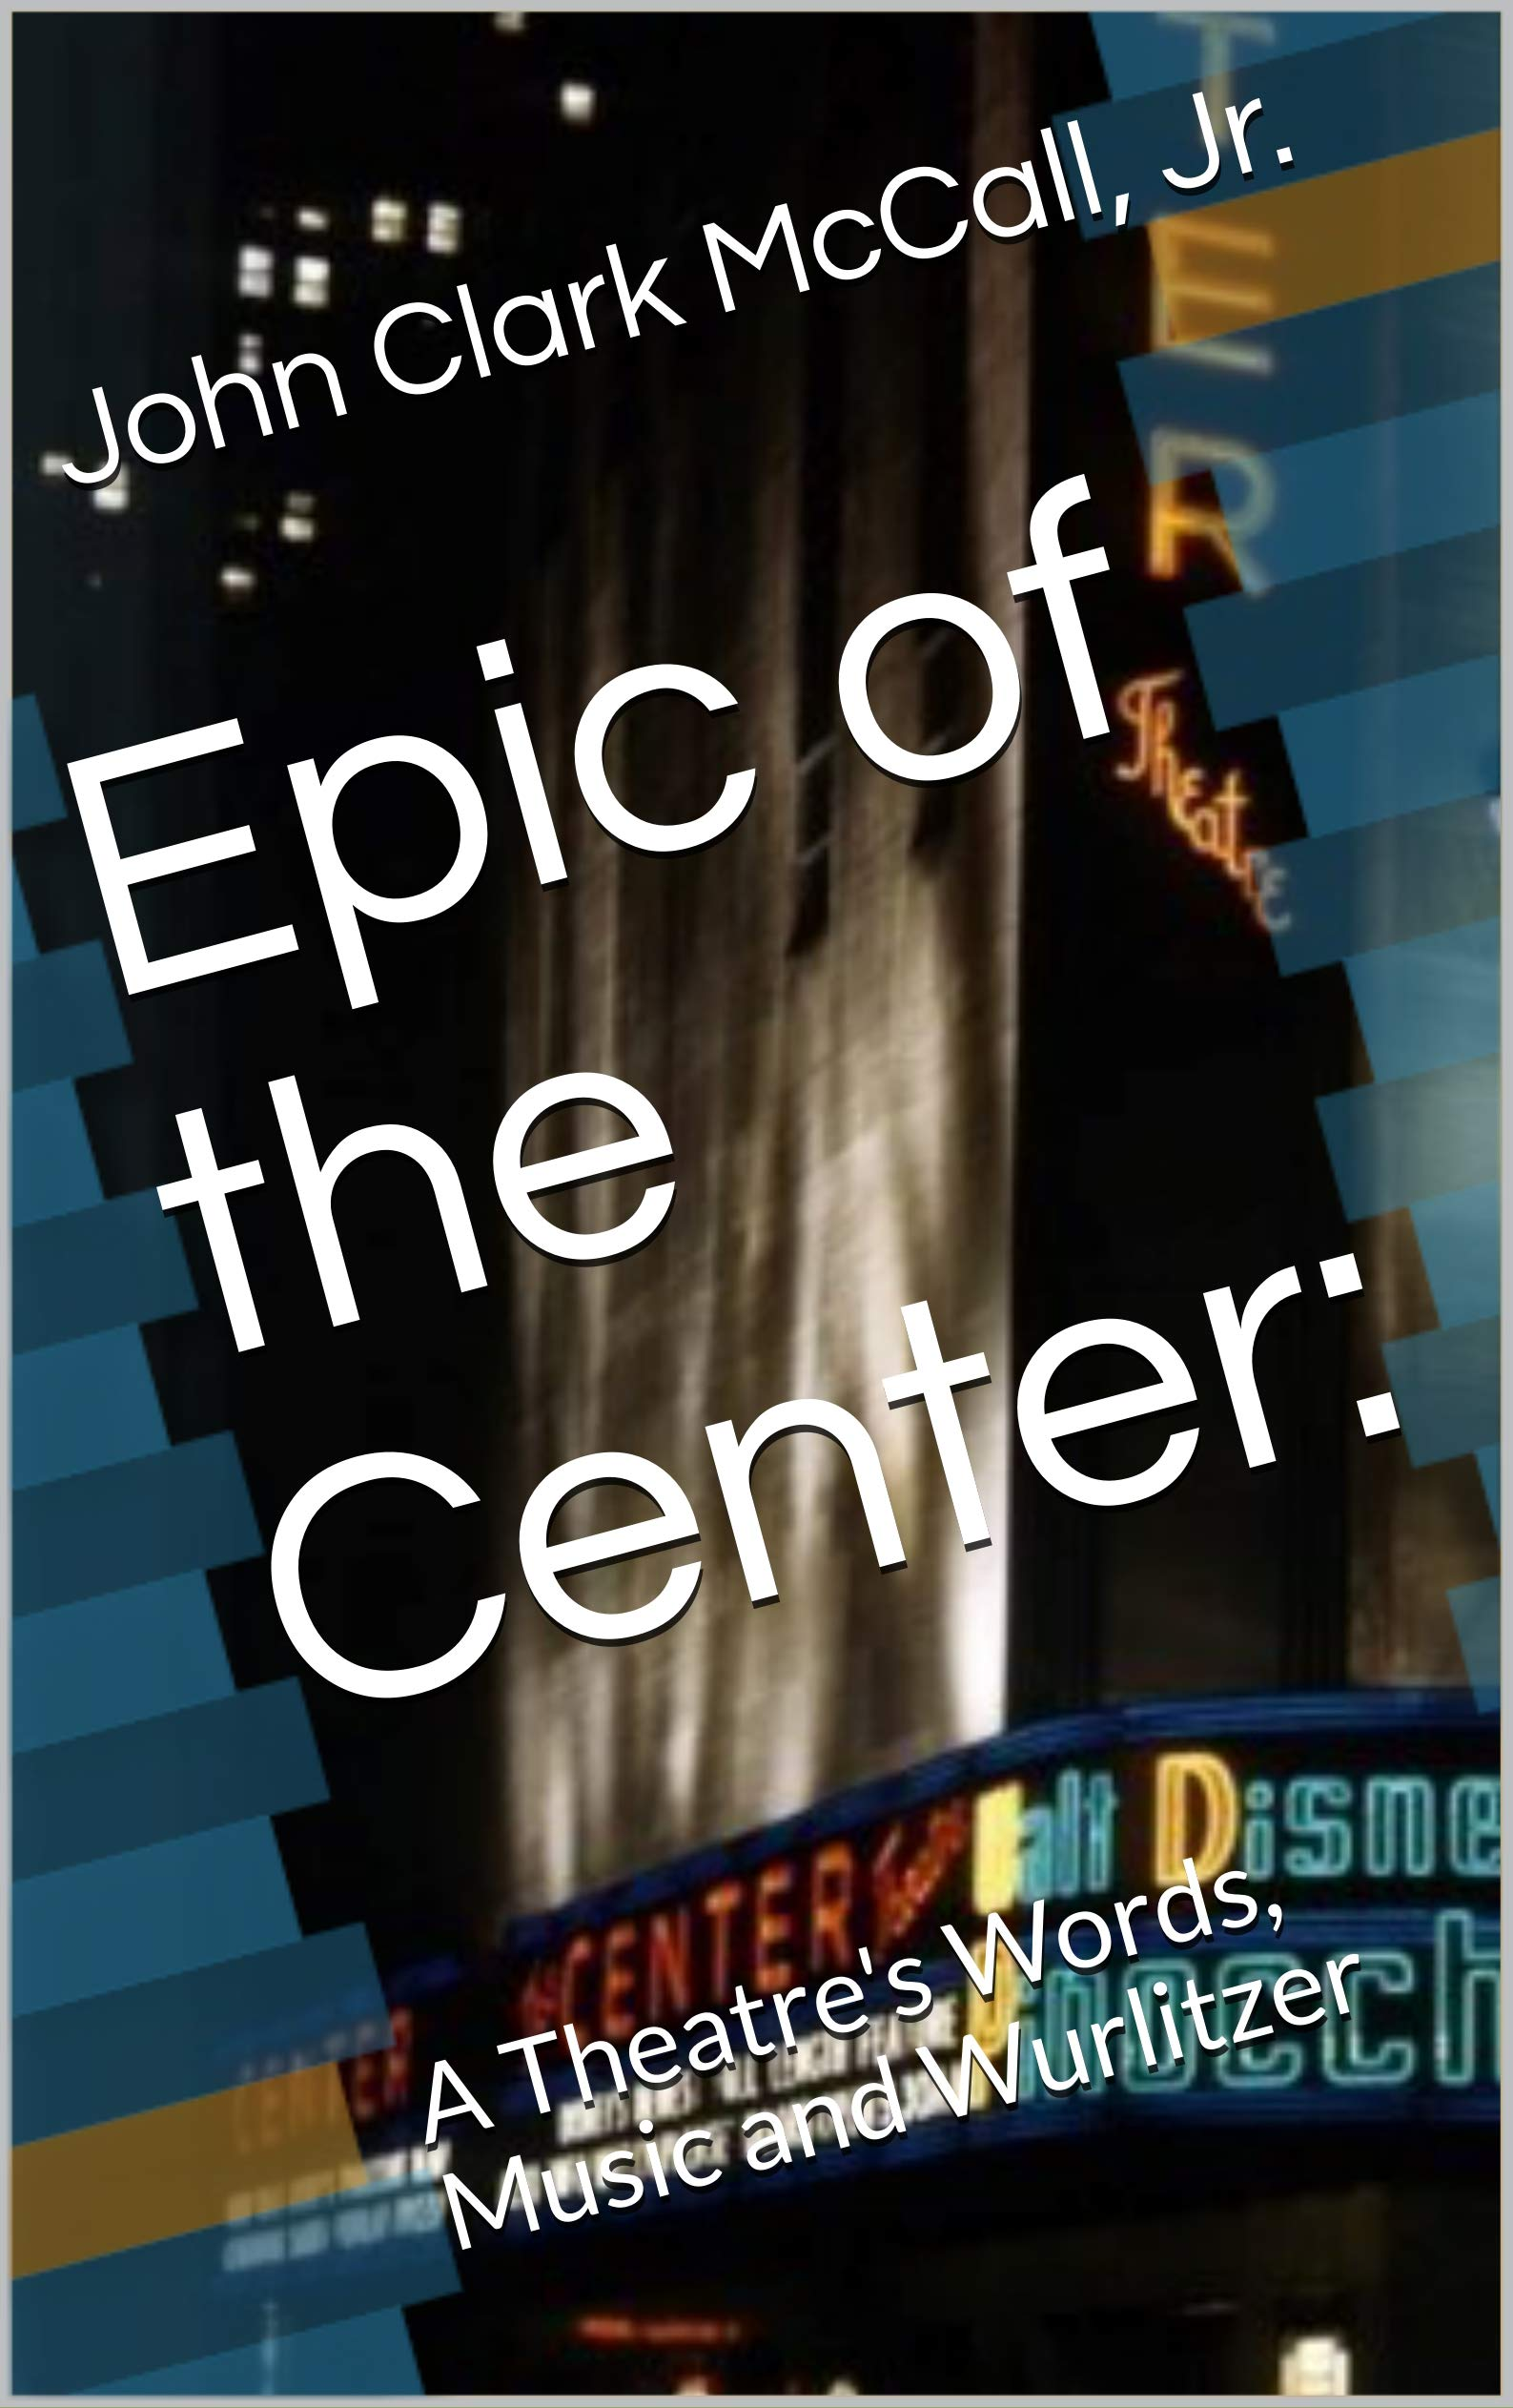 Epic of the Center:: A Theatre's Words, Music and Wurlitzer